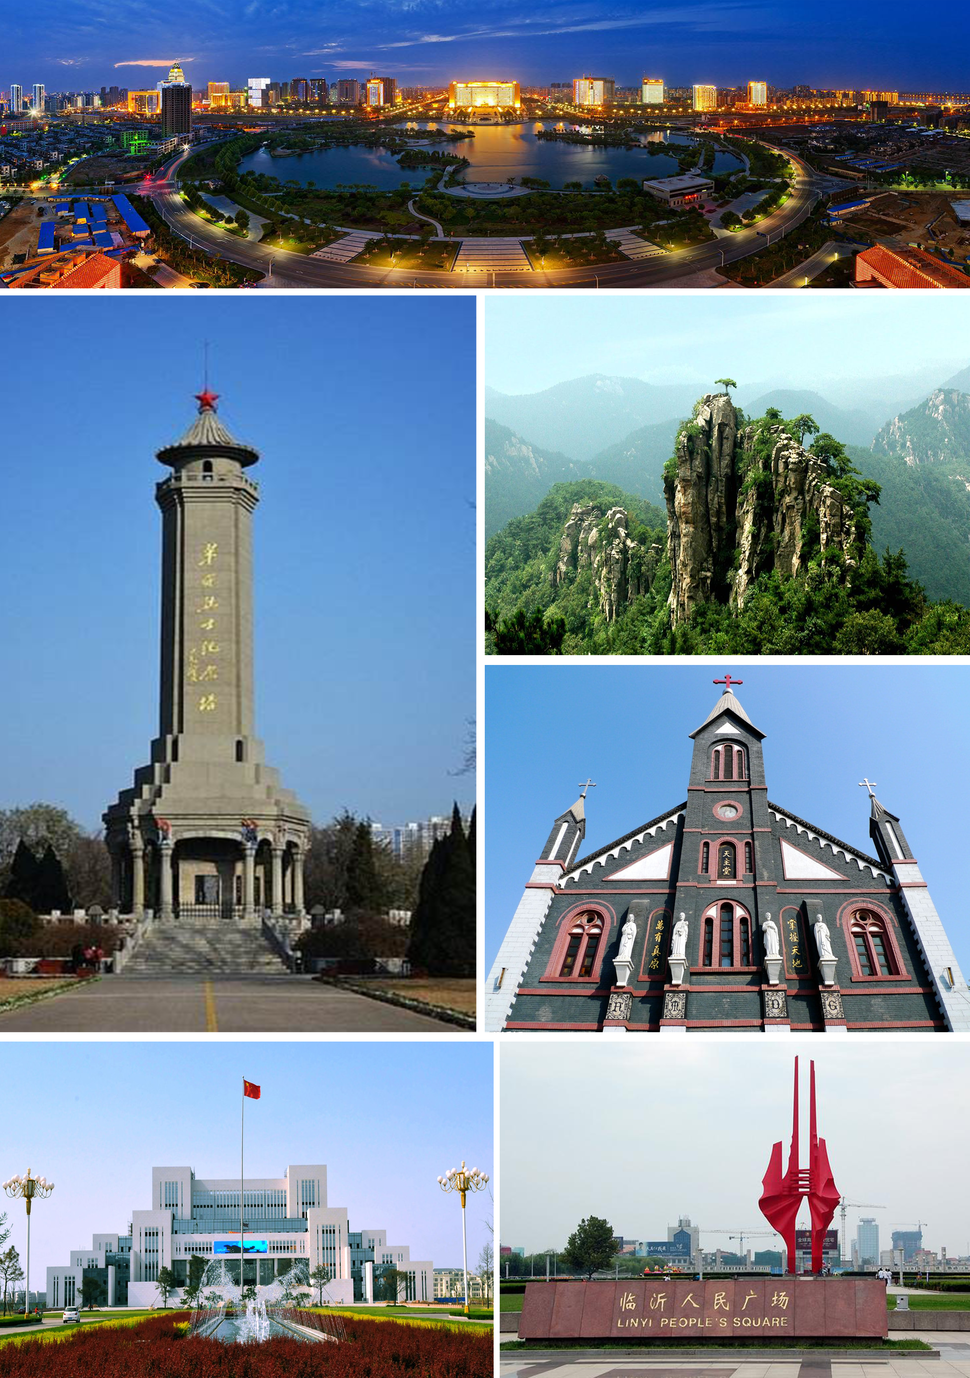 Clockwise from top: A view of the Beicheng New District skyline, Mount Meng, Cathedral of Linyi, Linyi People's Square, The Library of Linyi University, and The Memorial Tower of Revolutionary Martyrs